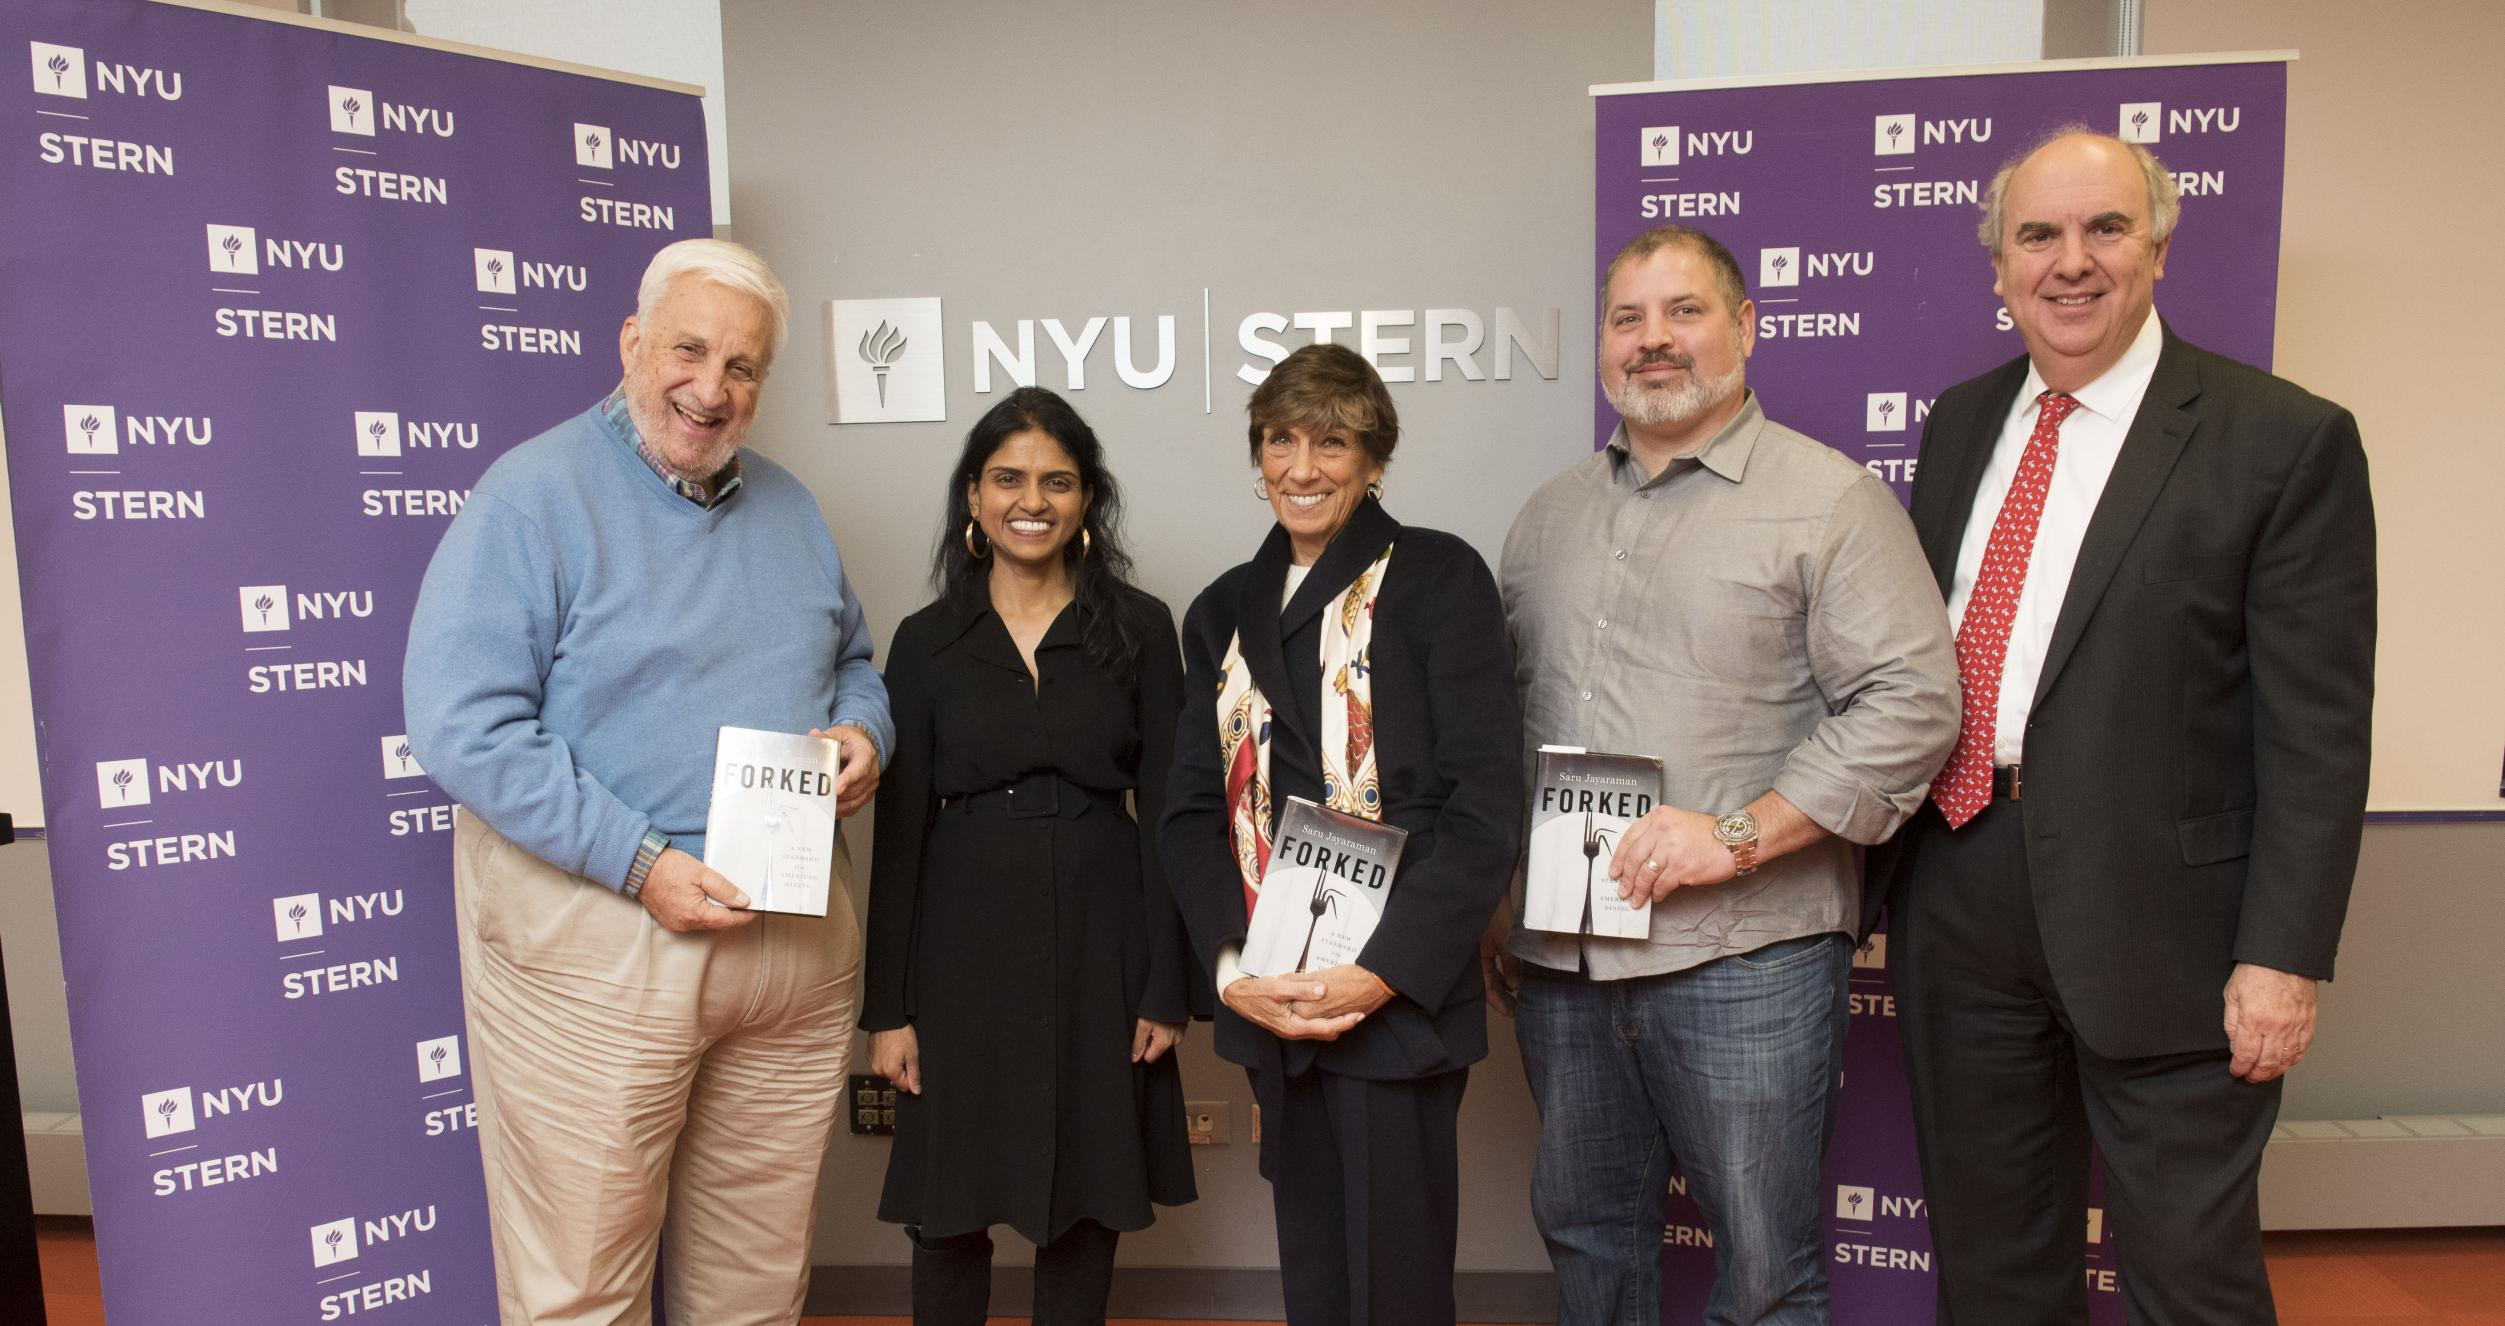 Five people standing in front of a wall with NYU Stern logo, flanked by two purple banners with the NYU Stern logo